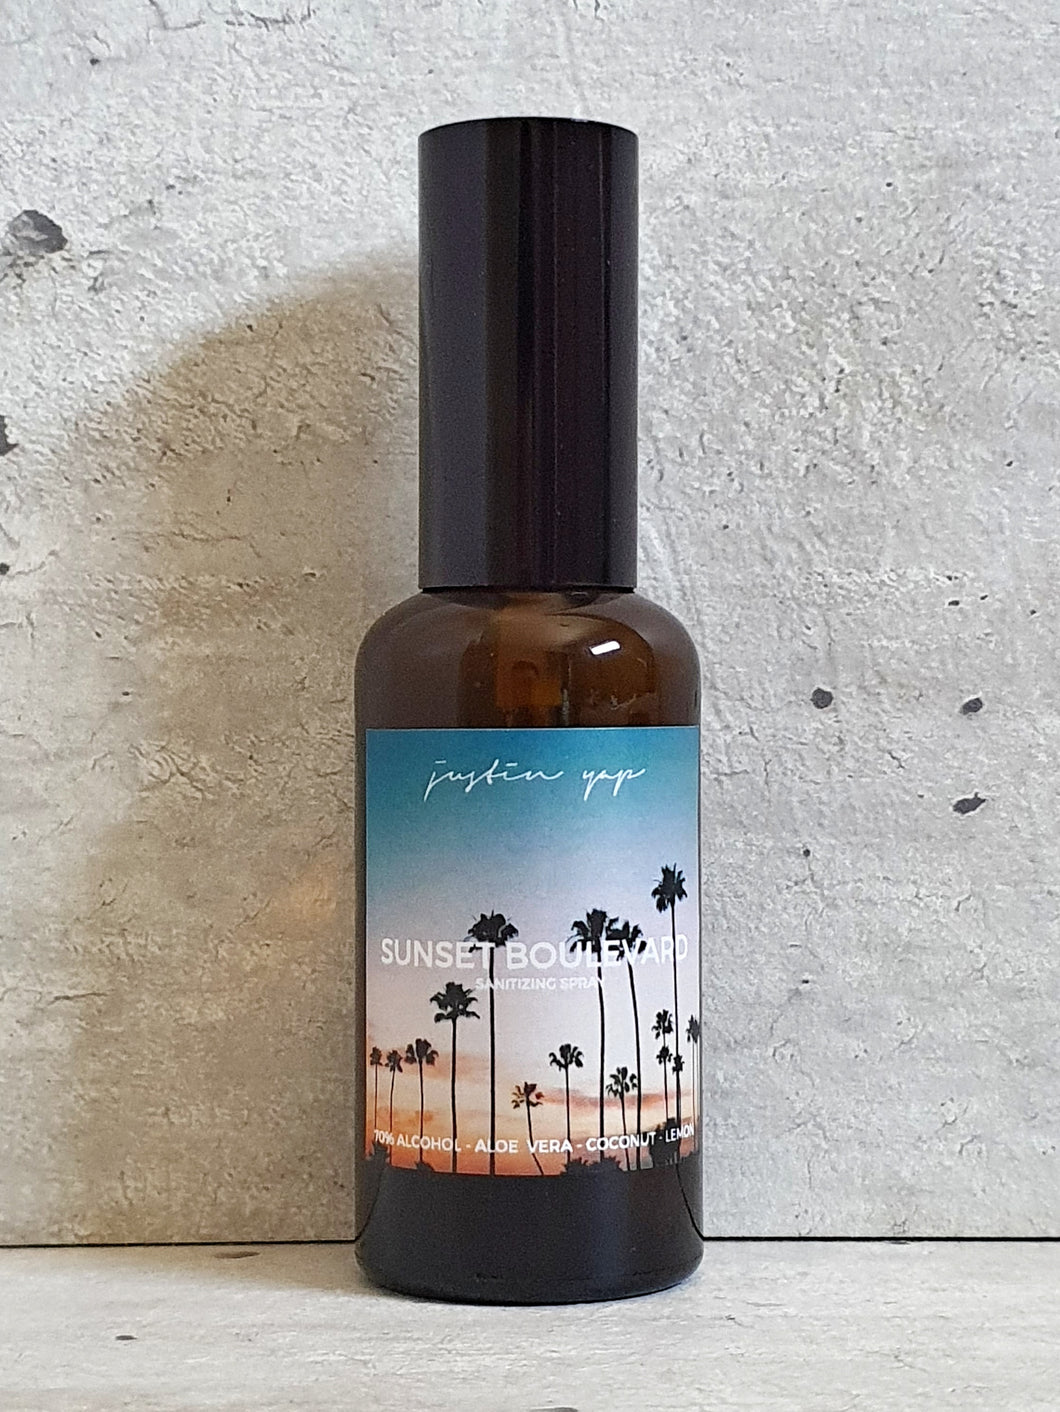 Sunset Boulevard Sanitizing Spray - Coconut / Lemon